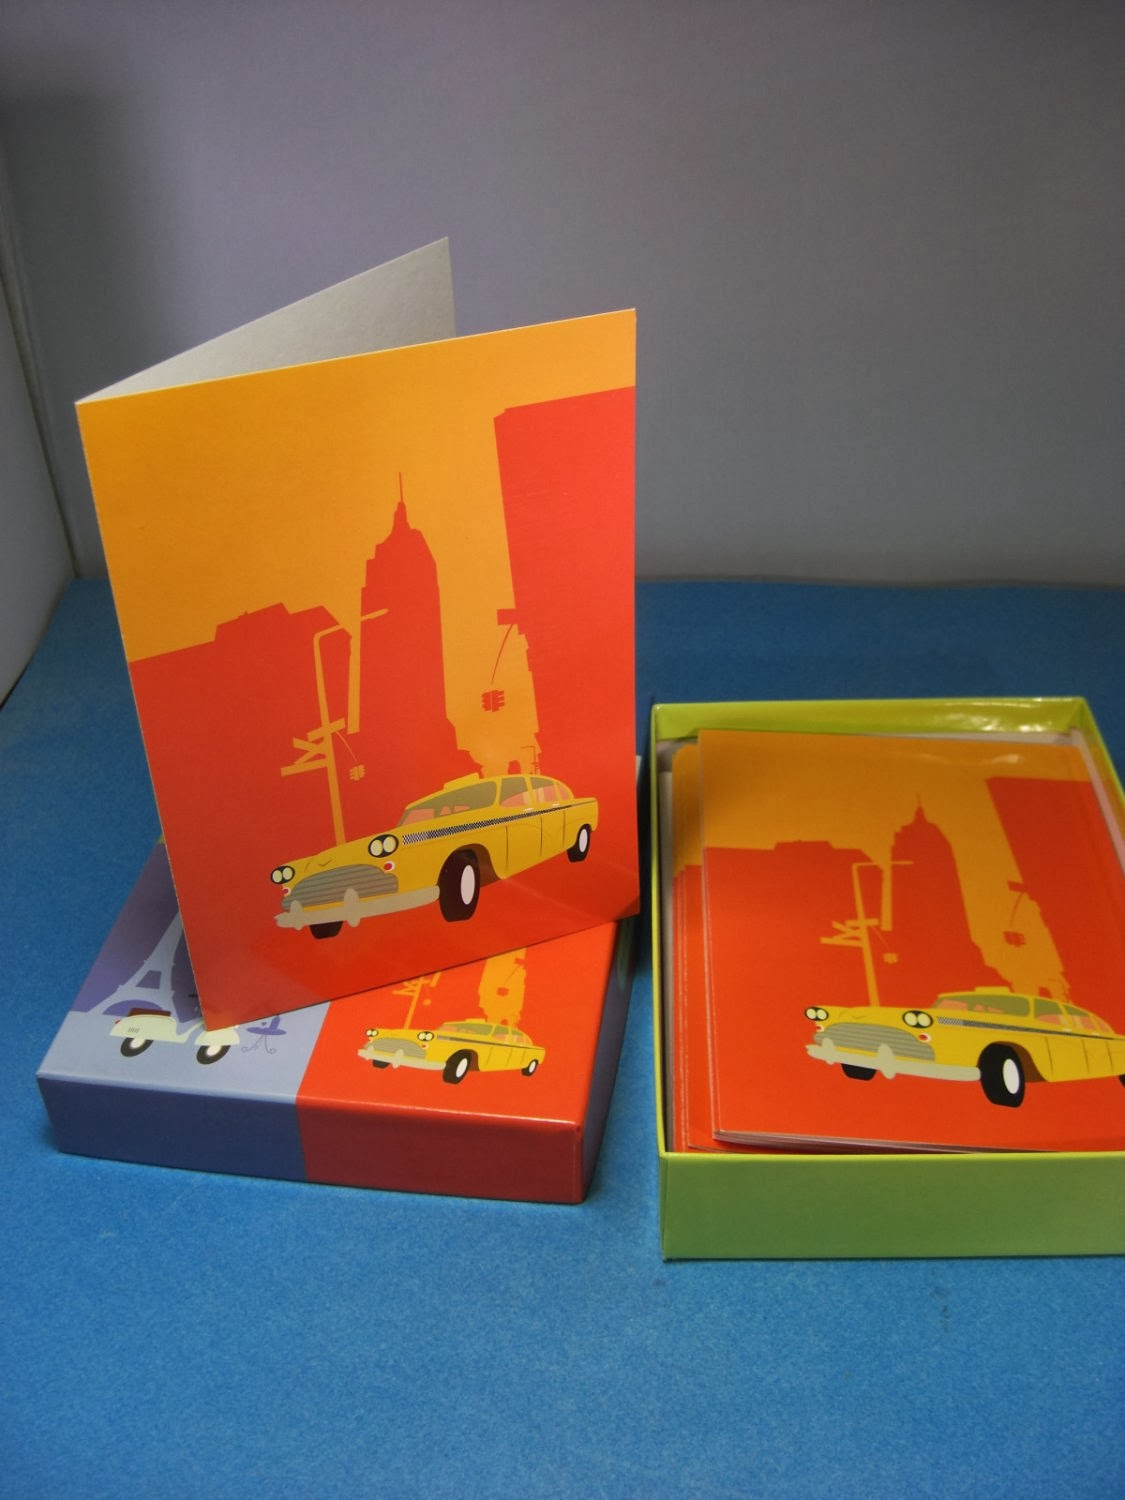 http://bargaincart.ecrater.com/p/19452197/marcel-schurman-orange-yellow-stationery?keywords=Marcel+Schurman+Orange+%26+Yellow+Stationery+New+York+Taxi+Cab+20+Cards+%26+Envelopes#